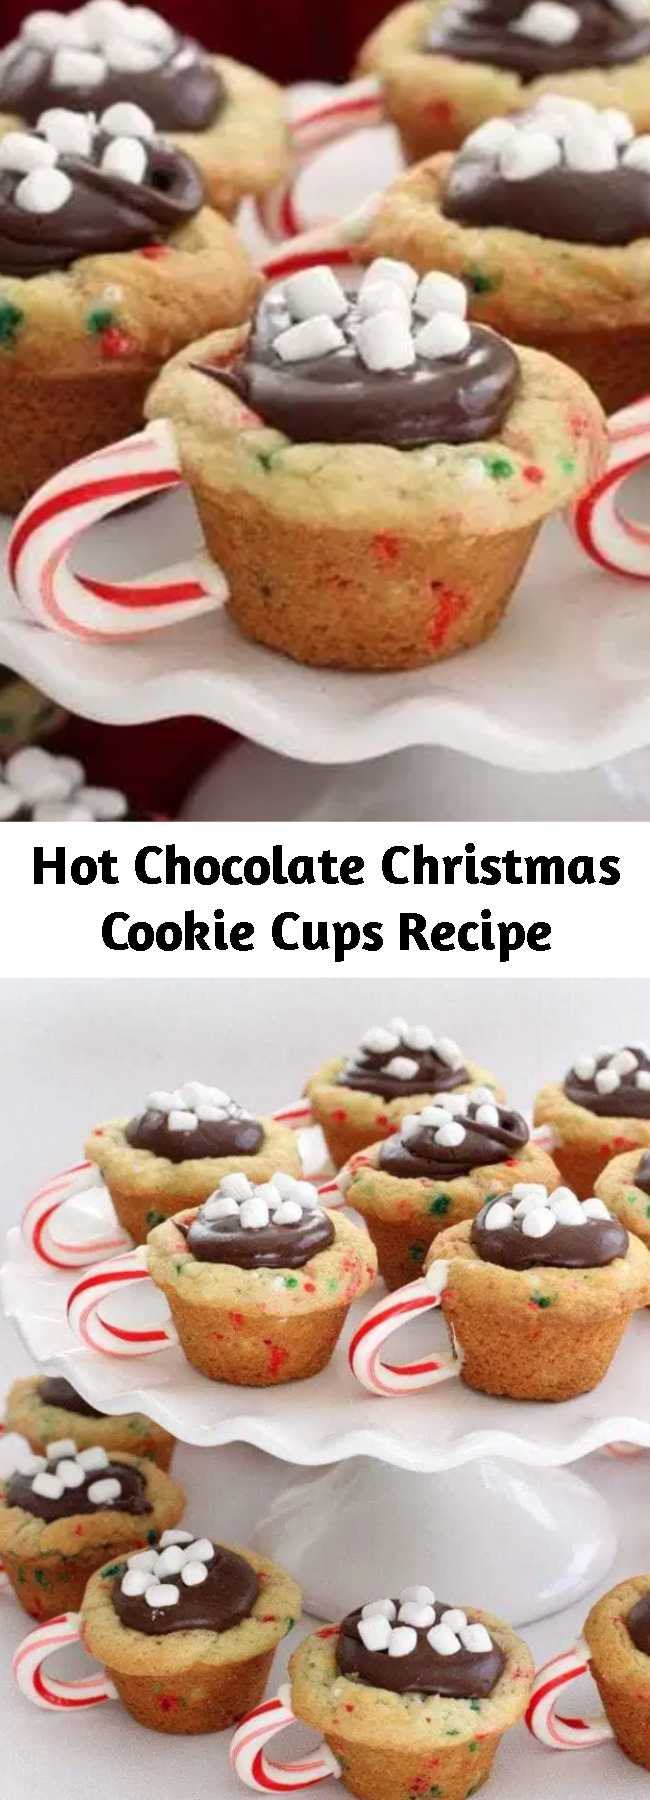 Hot Chocolate Christmas Cookie Cups Recipe - Hot Chocolate Cookie Cups are the most fun & festive Christmas cookies ever! Sugar cookie cups filled with fudge, mini marshmallows & sprinkles with a darling candy cane handle!